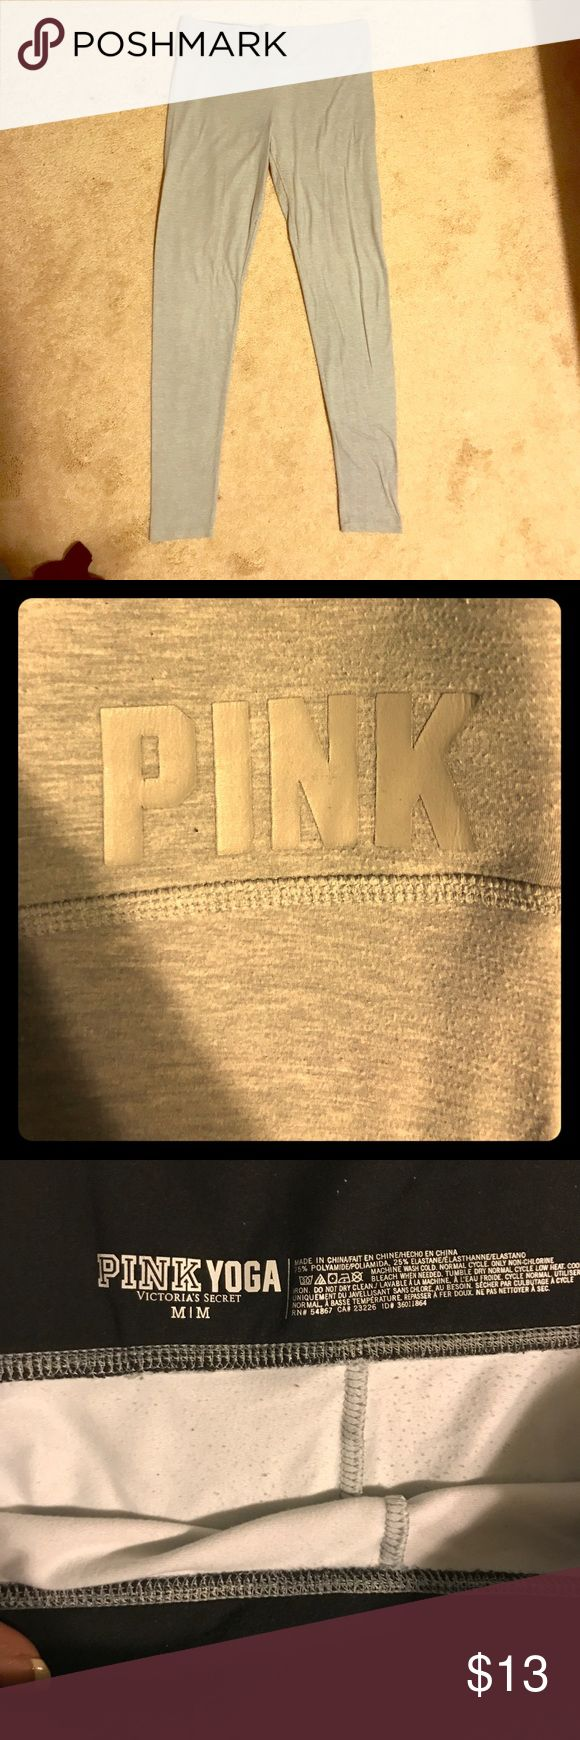 PINK Silver Leggings (Medium) BRAND NEW CONDITION Cute Silver PINK YOGA pants. They fit extremely comfortably. Selling this at a low price because I got this as a gift. I haven't worn these too much, and they are in Brand new Condition. If you like, send an offer right away. Things in my closet tend to sell fast ❤️ Cheers, happy poshing :) PINK Victoria's Secret Pants Leggings